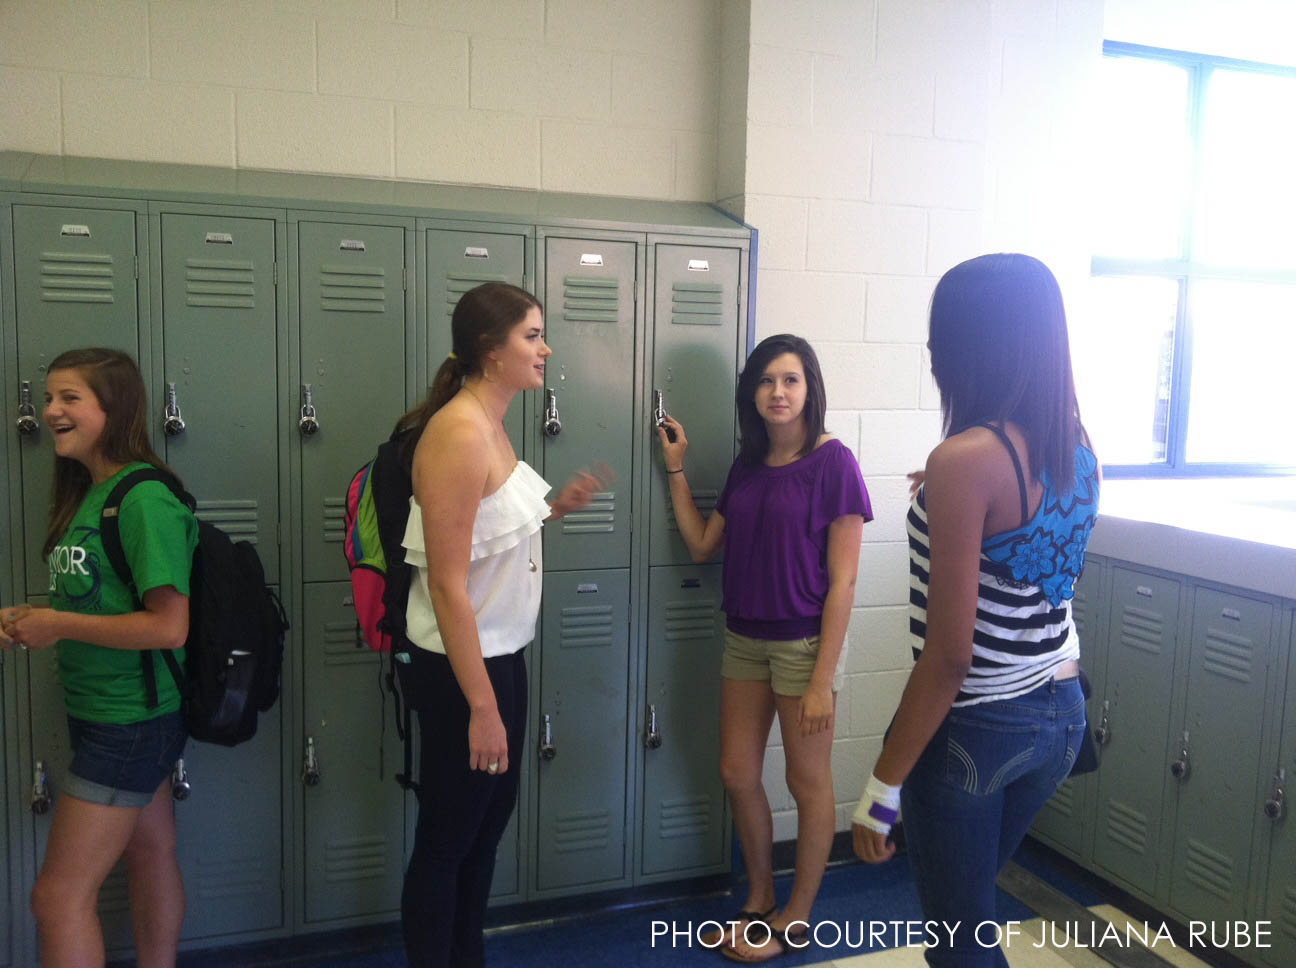 Students respond to dress code changes | The Mycenaean